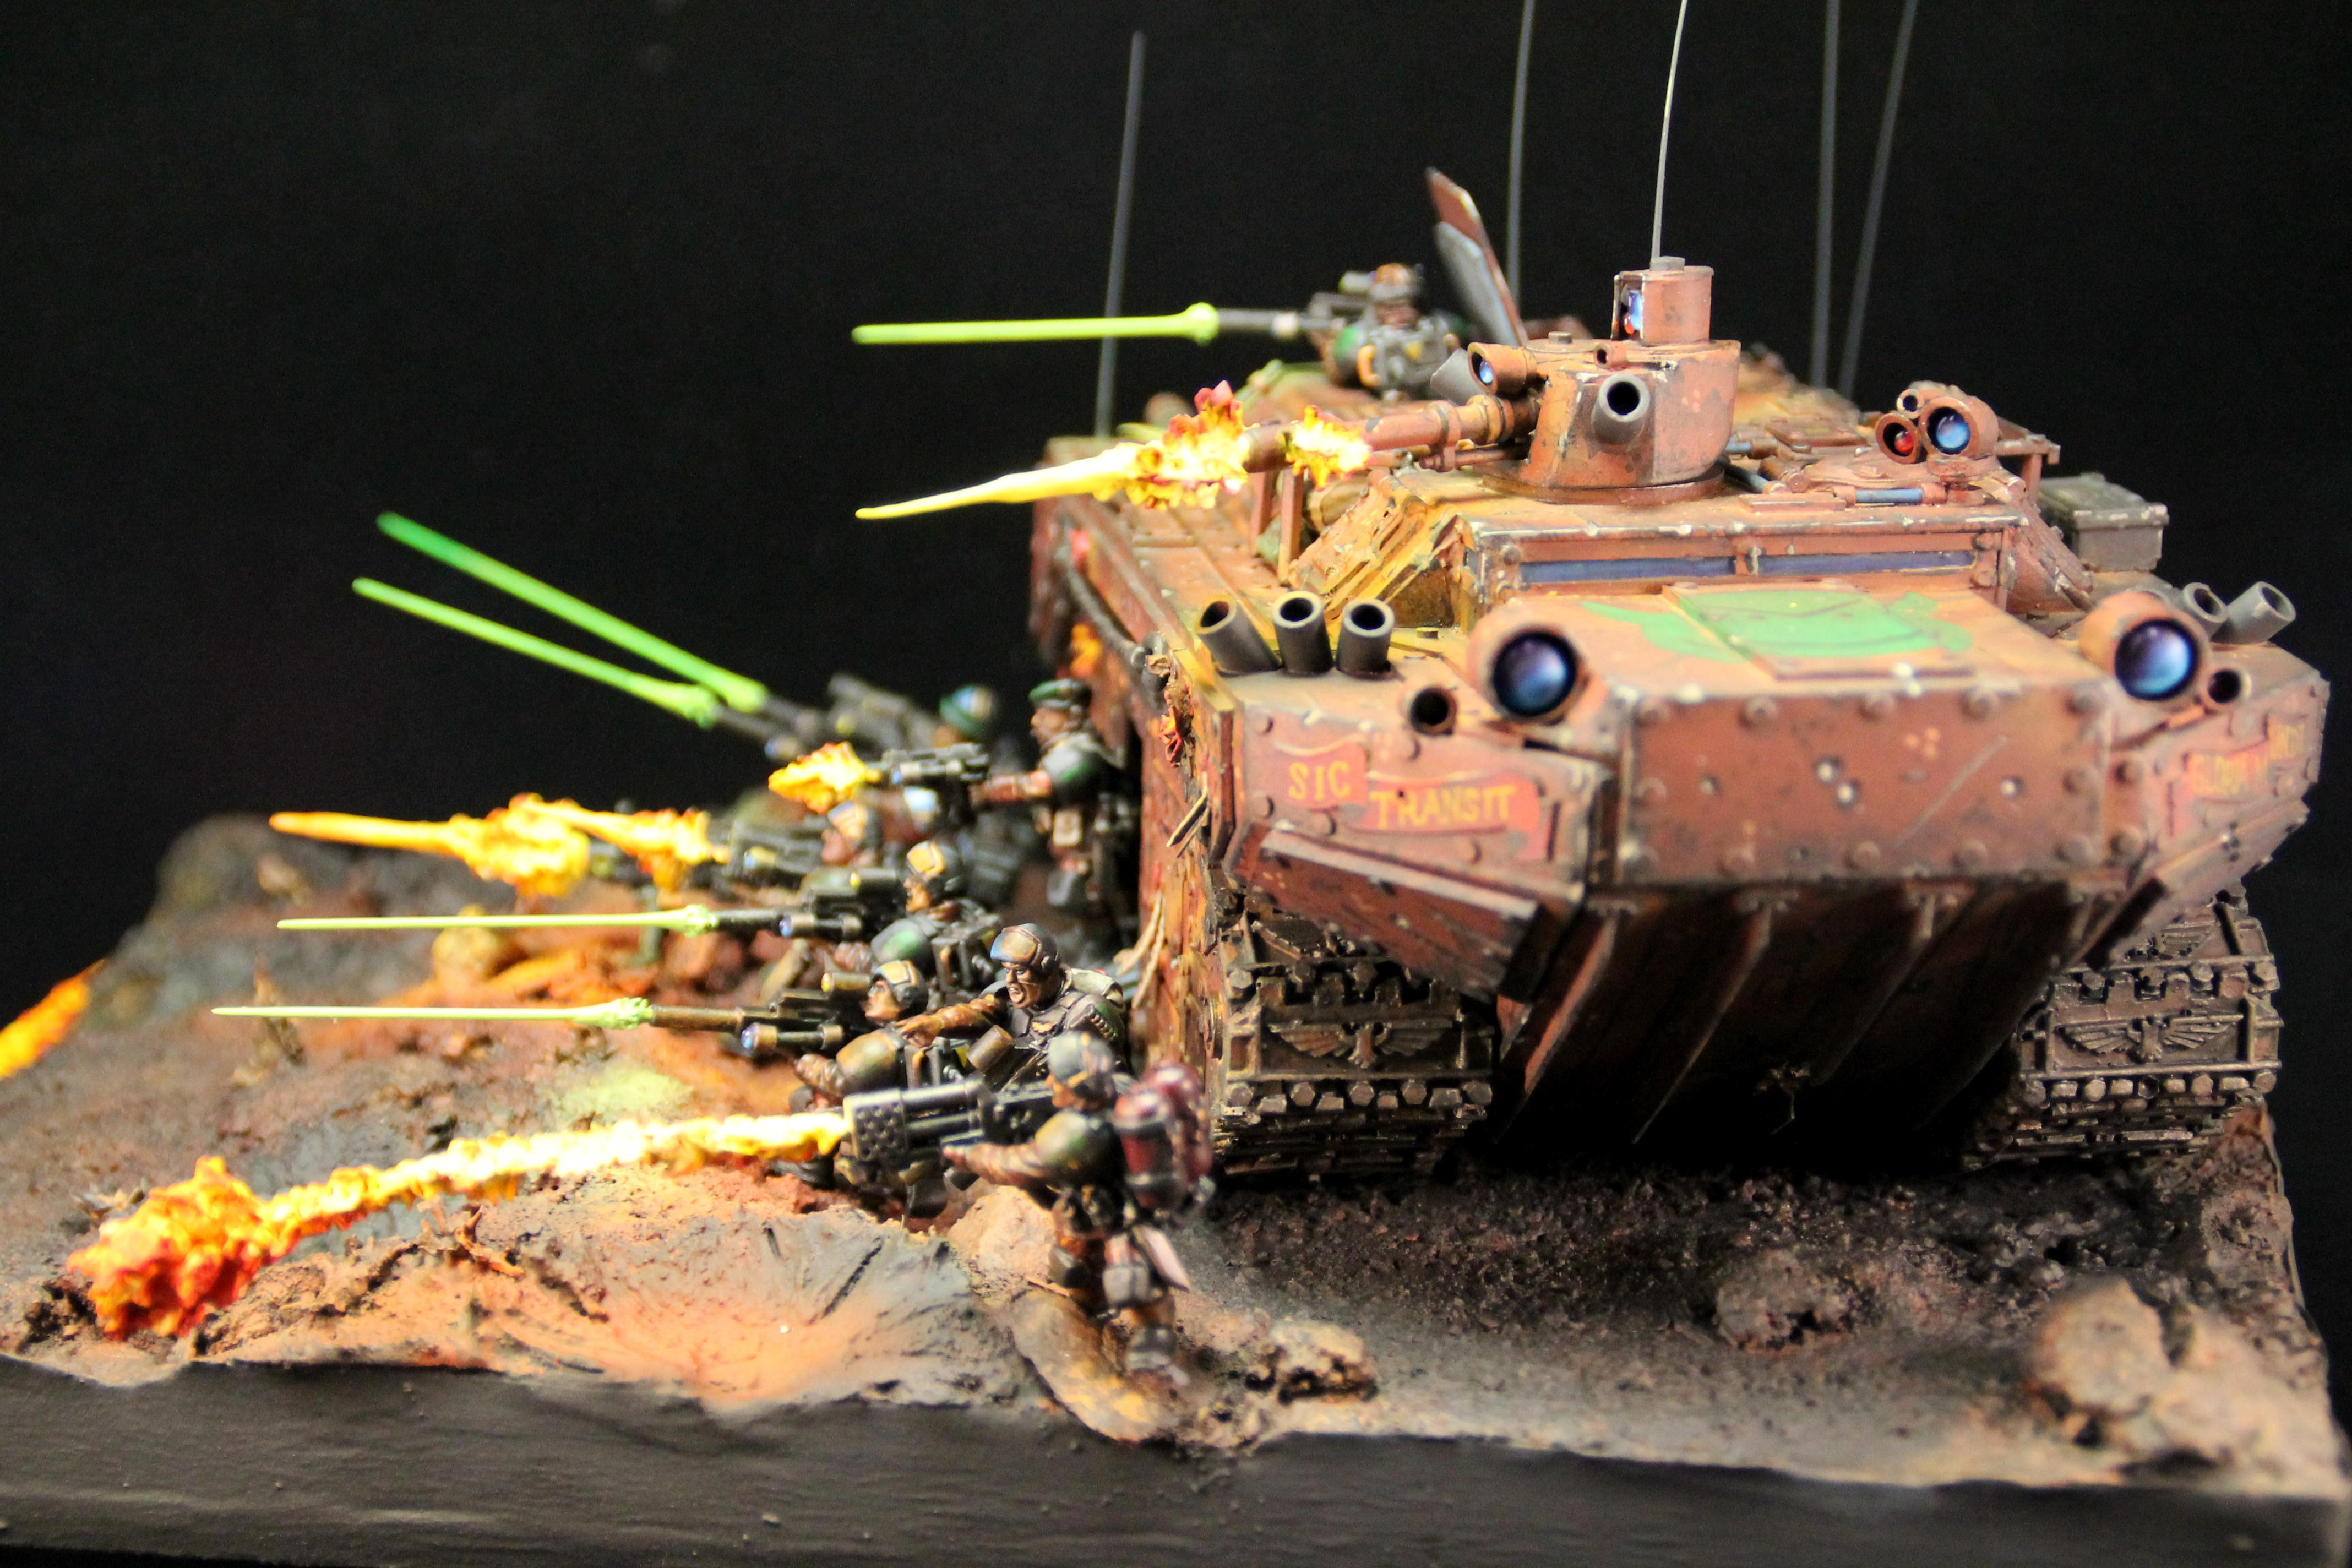 Armor, Astra Militarum, Diorama, Imperial Guard, Warhammer 40,000, Why Have They Got Lightsabers?